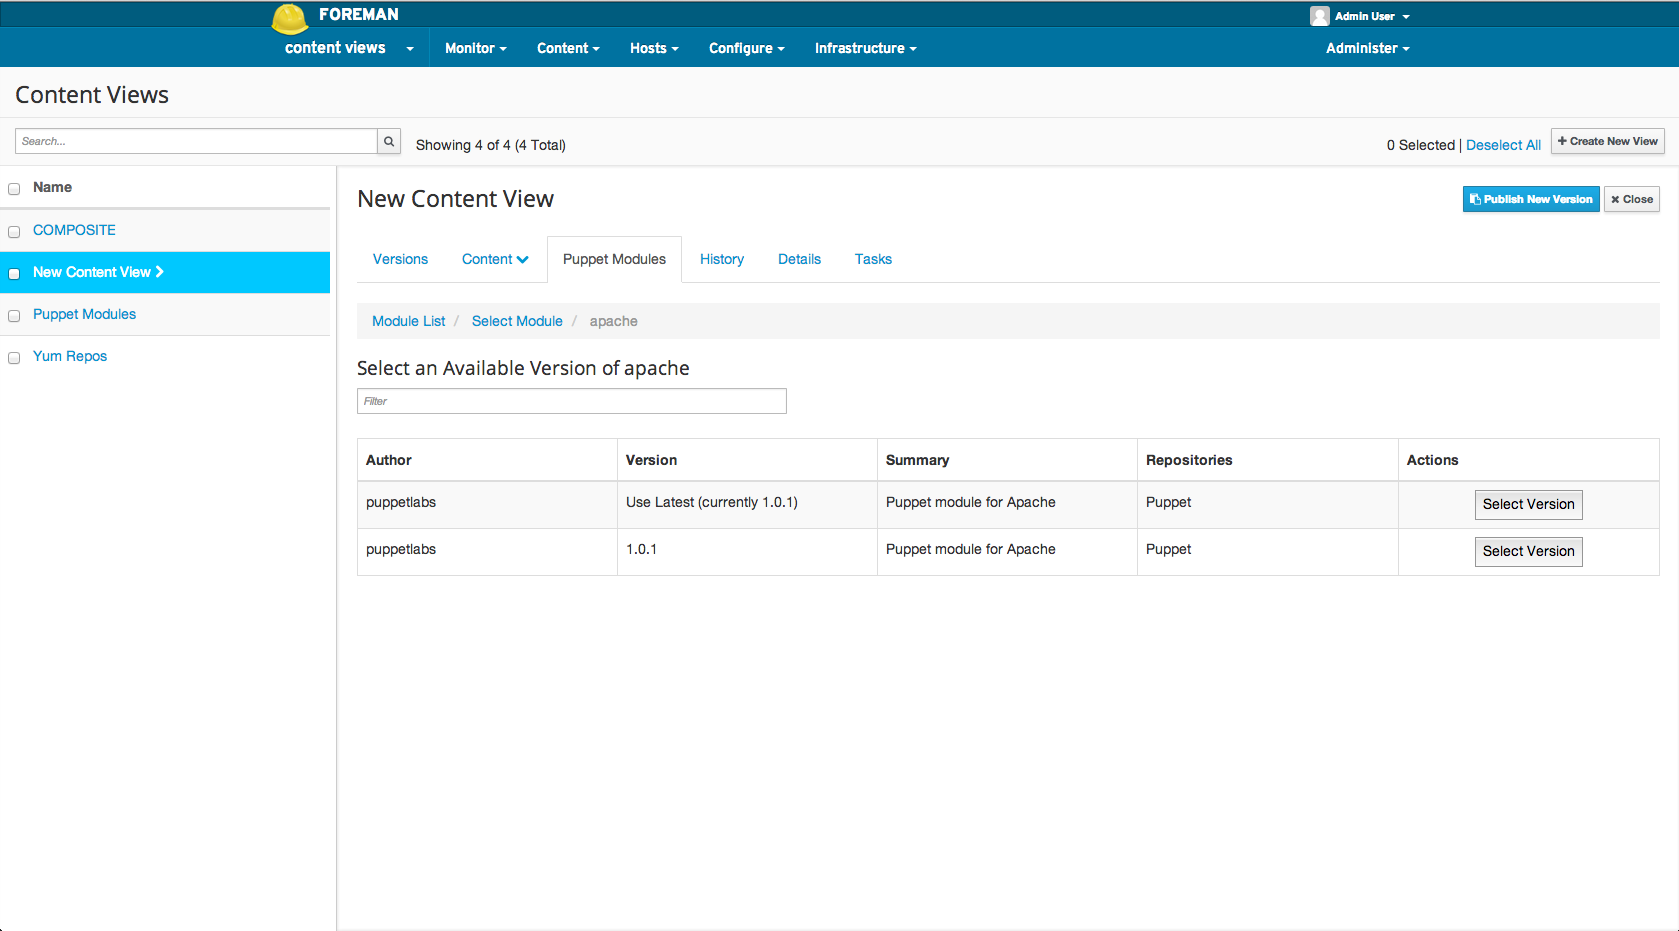 Adding a puppet module to a Content View 3